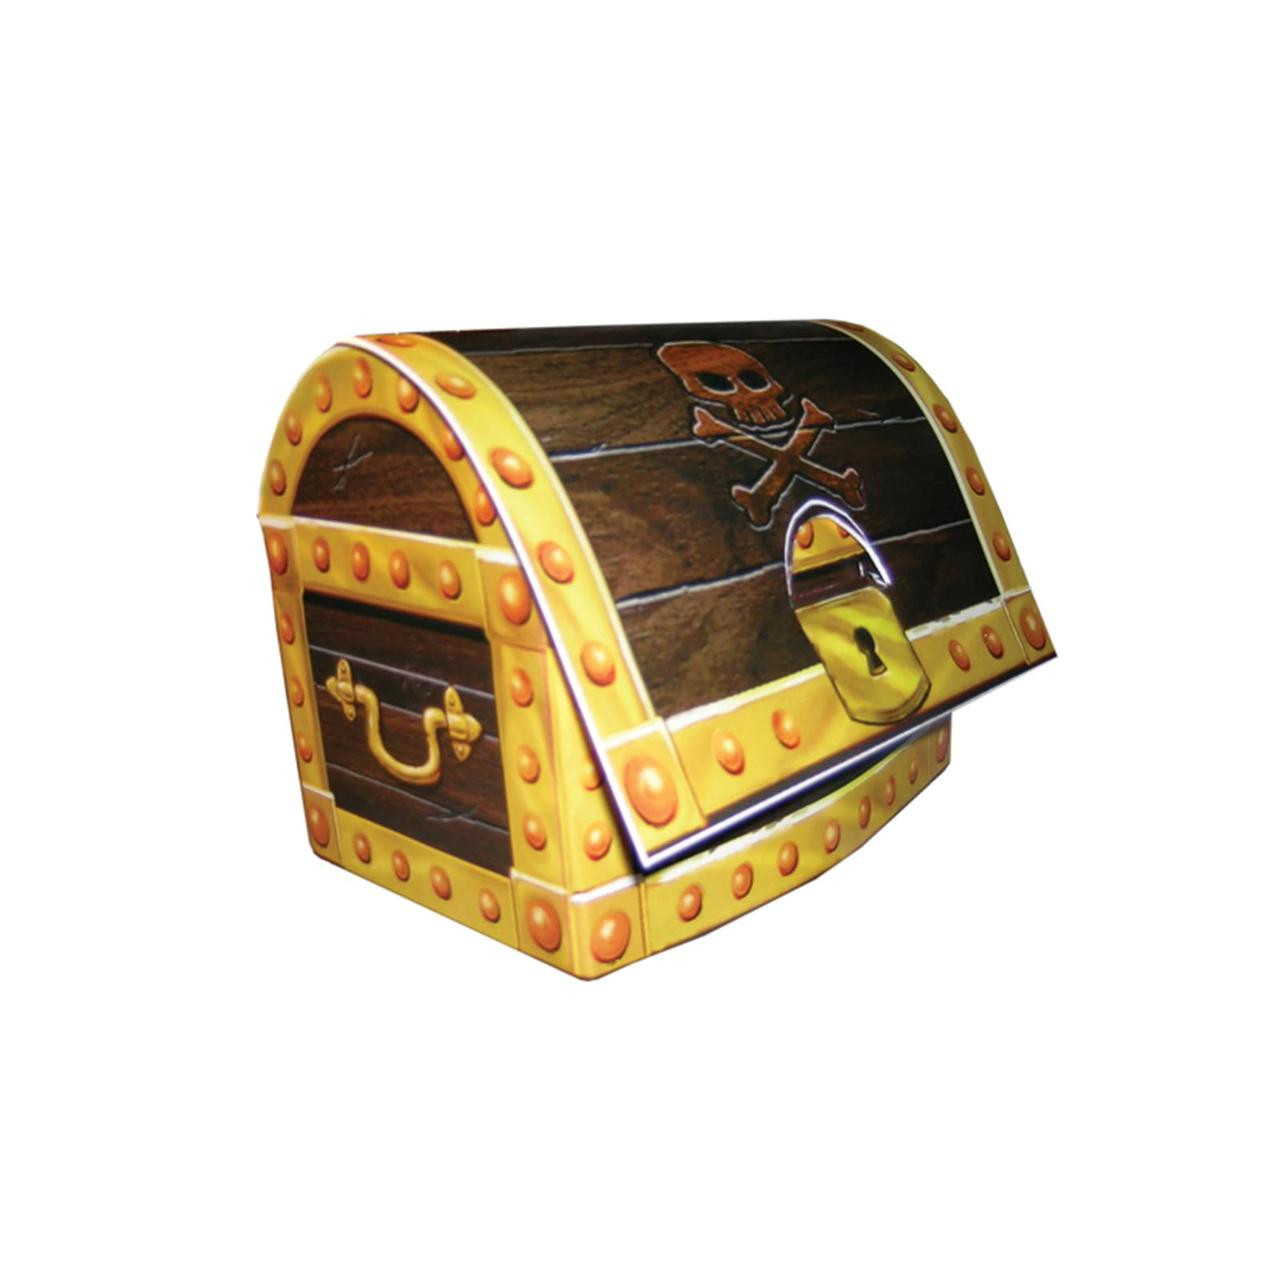 Remarkable Pirate Treasure Chest Centerpiece Home Interior And Landscaping Ologienasavecom